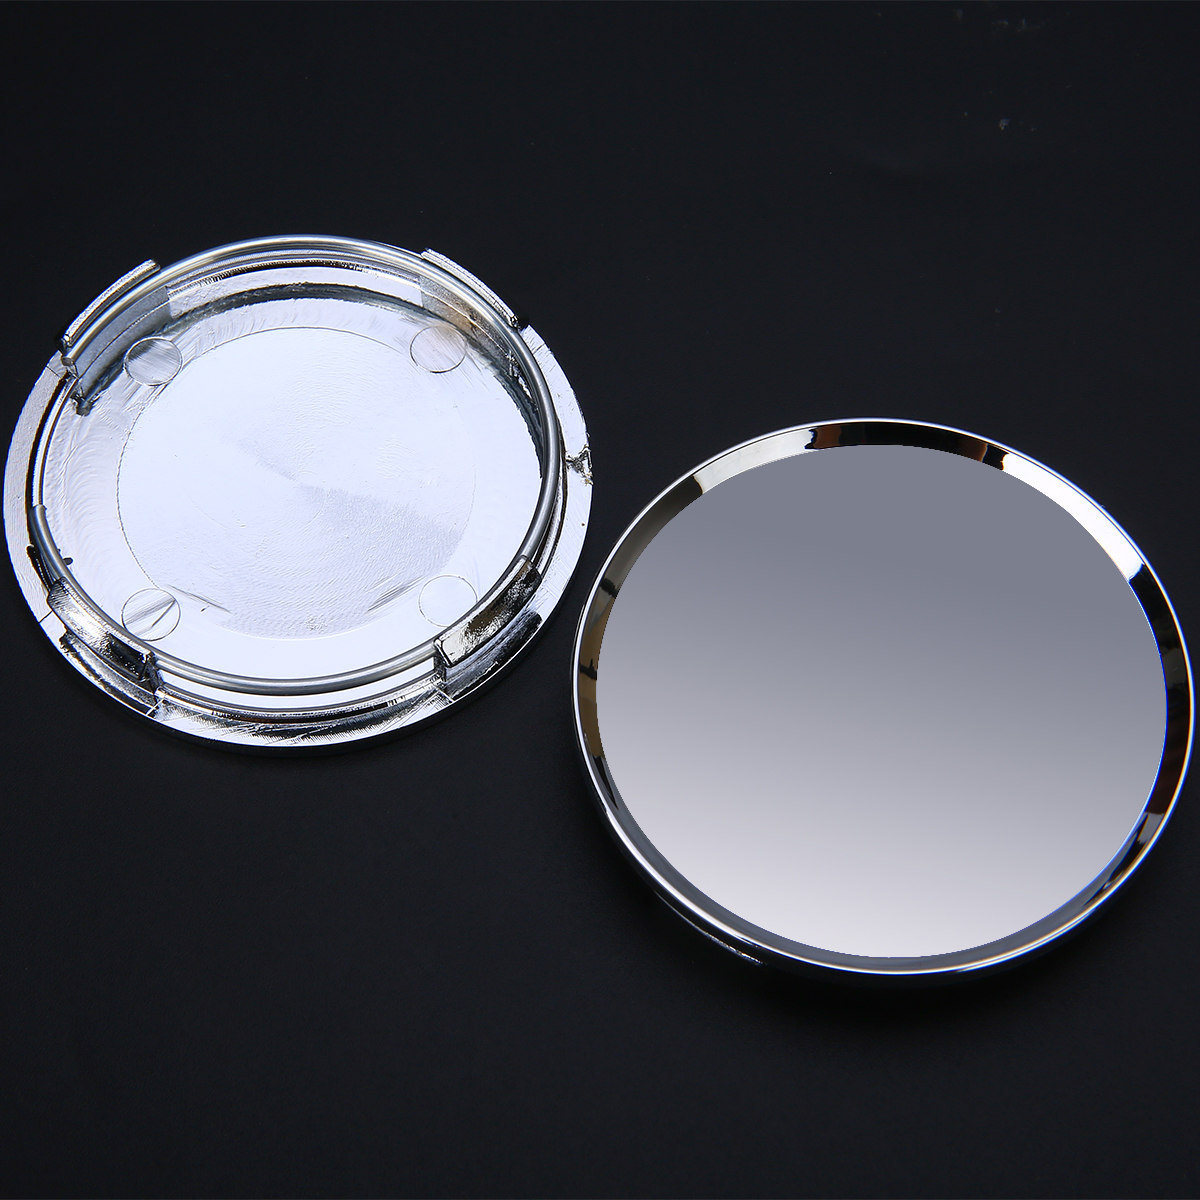 Image 5 - 4pcs/set Universal 63mm Car Vehicle Wheel Center Hub Cap Cover Silver For Most Car Trucks Vehicles-in Wheel Center Caps from Automobiles & Motorcycles